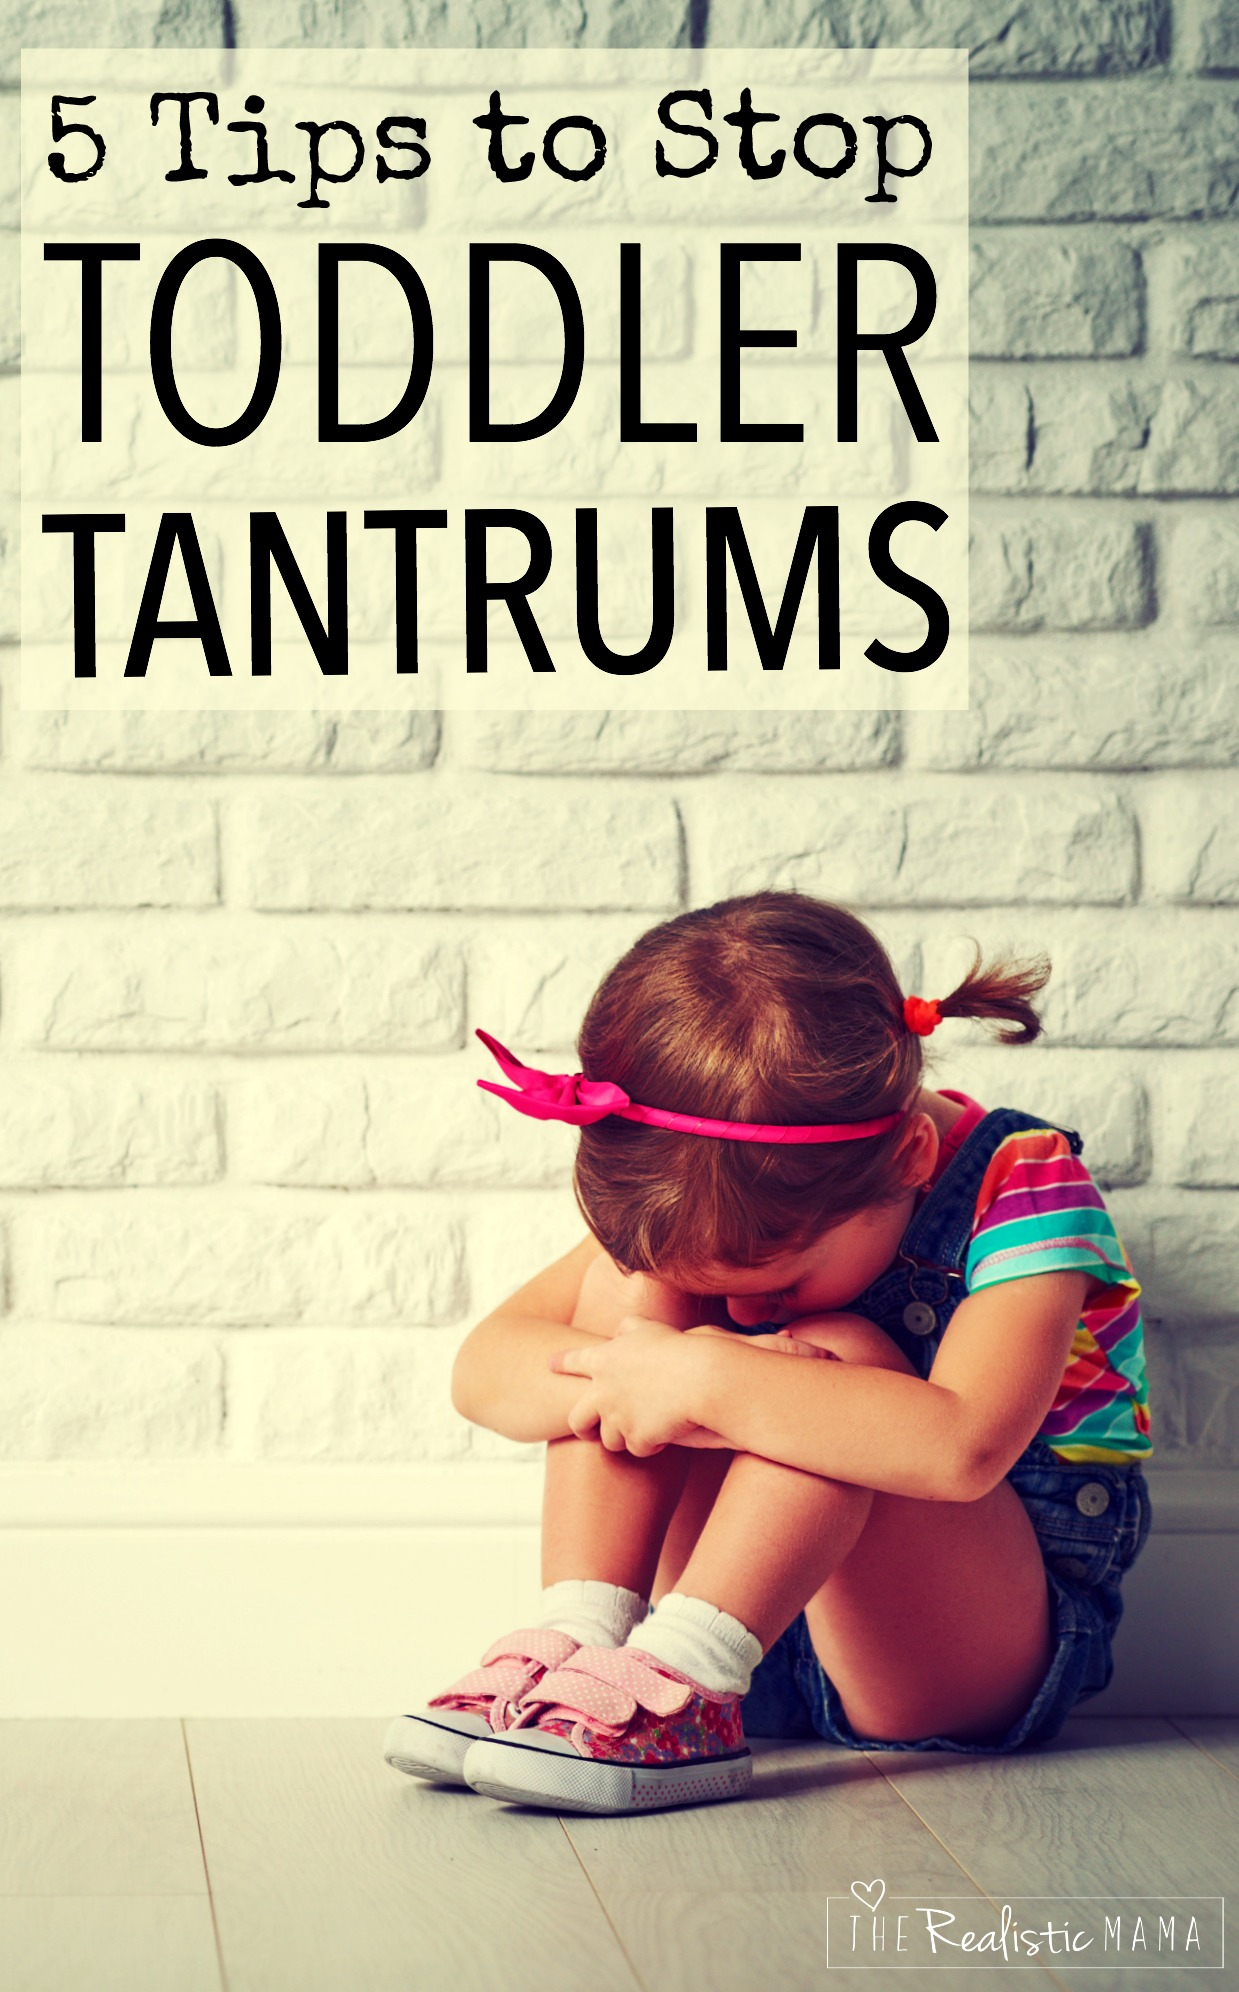 5 Tips to Stop Toddler Tantrums